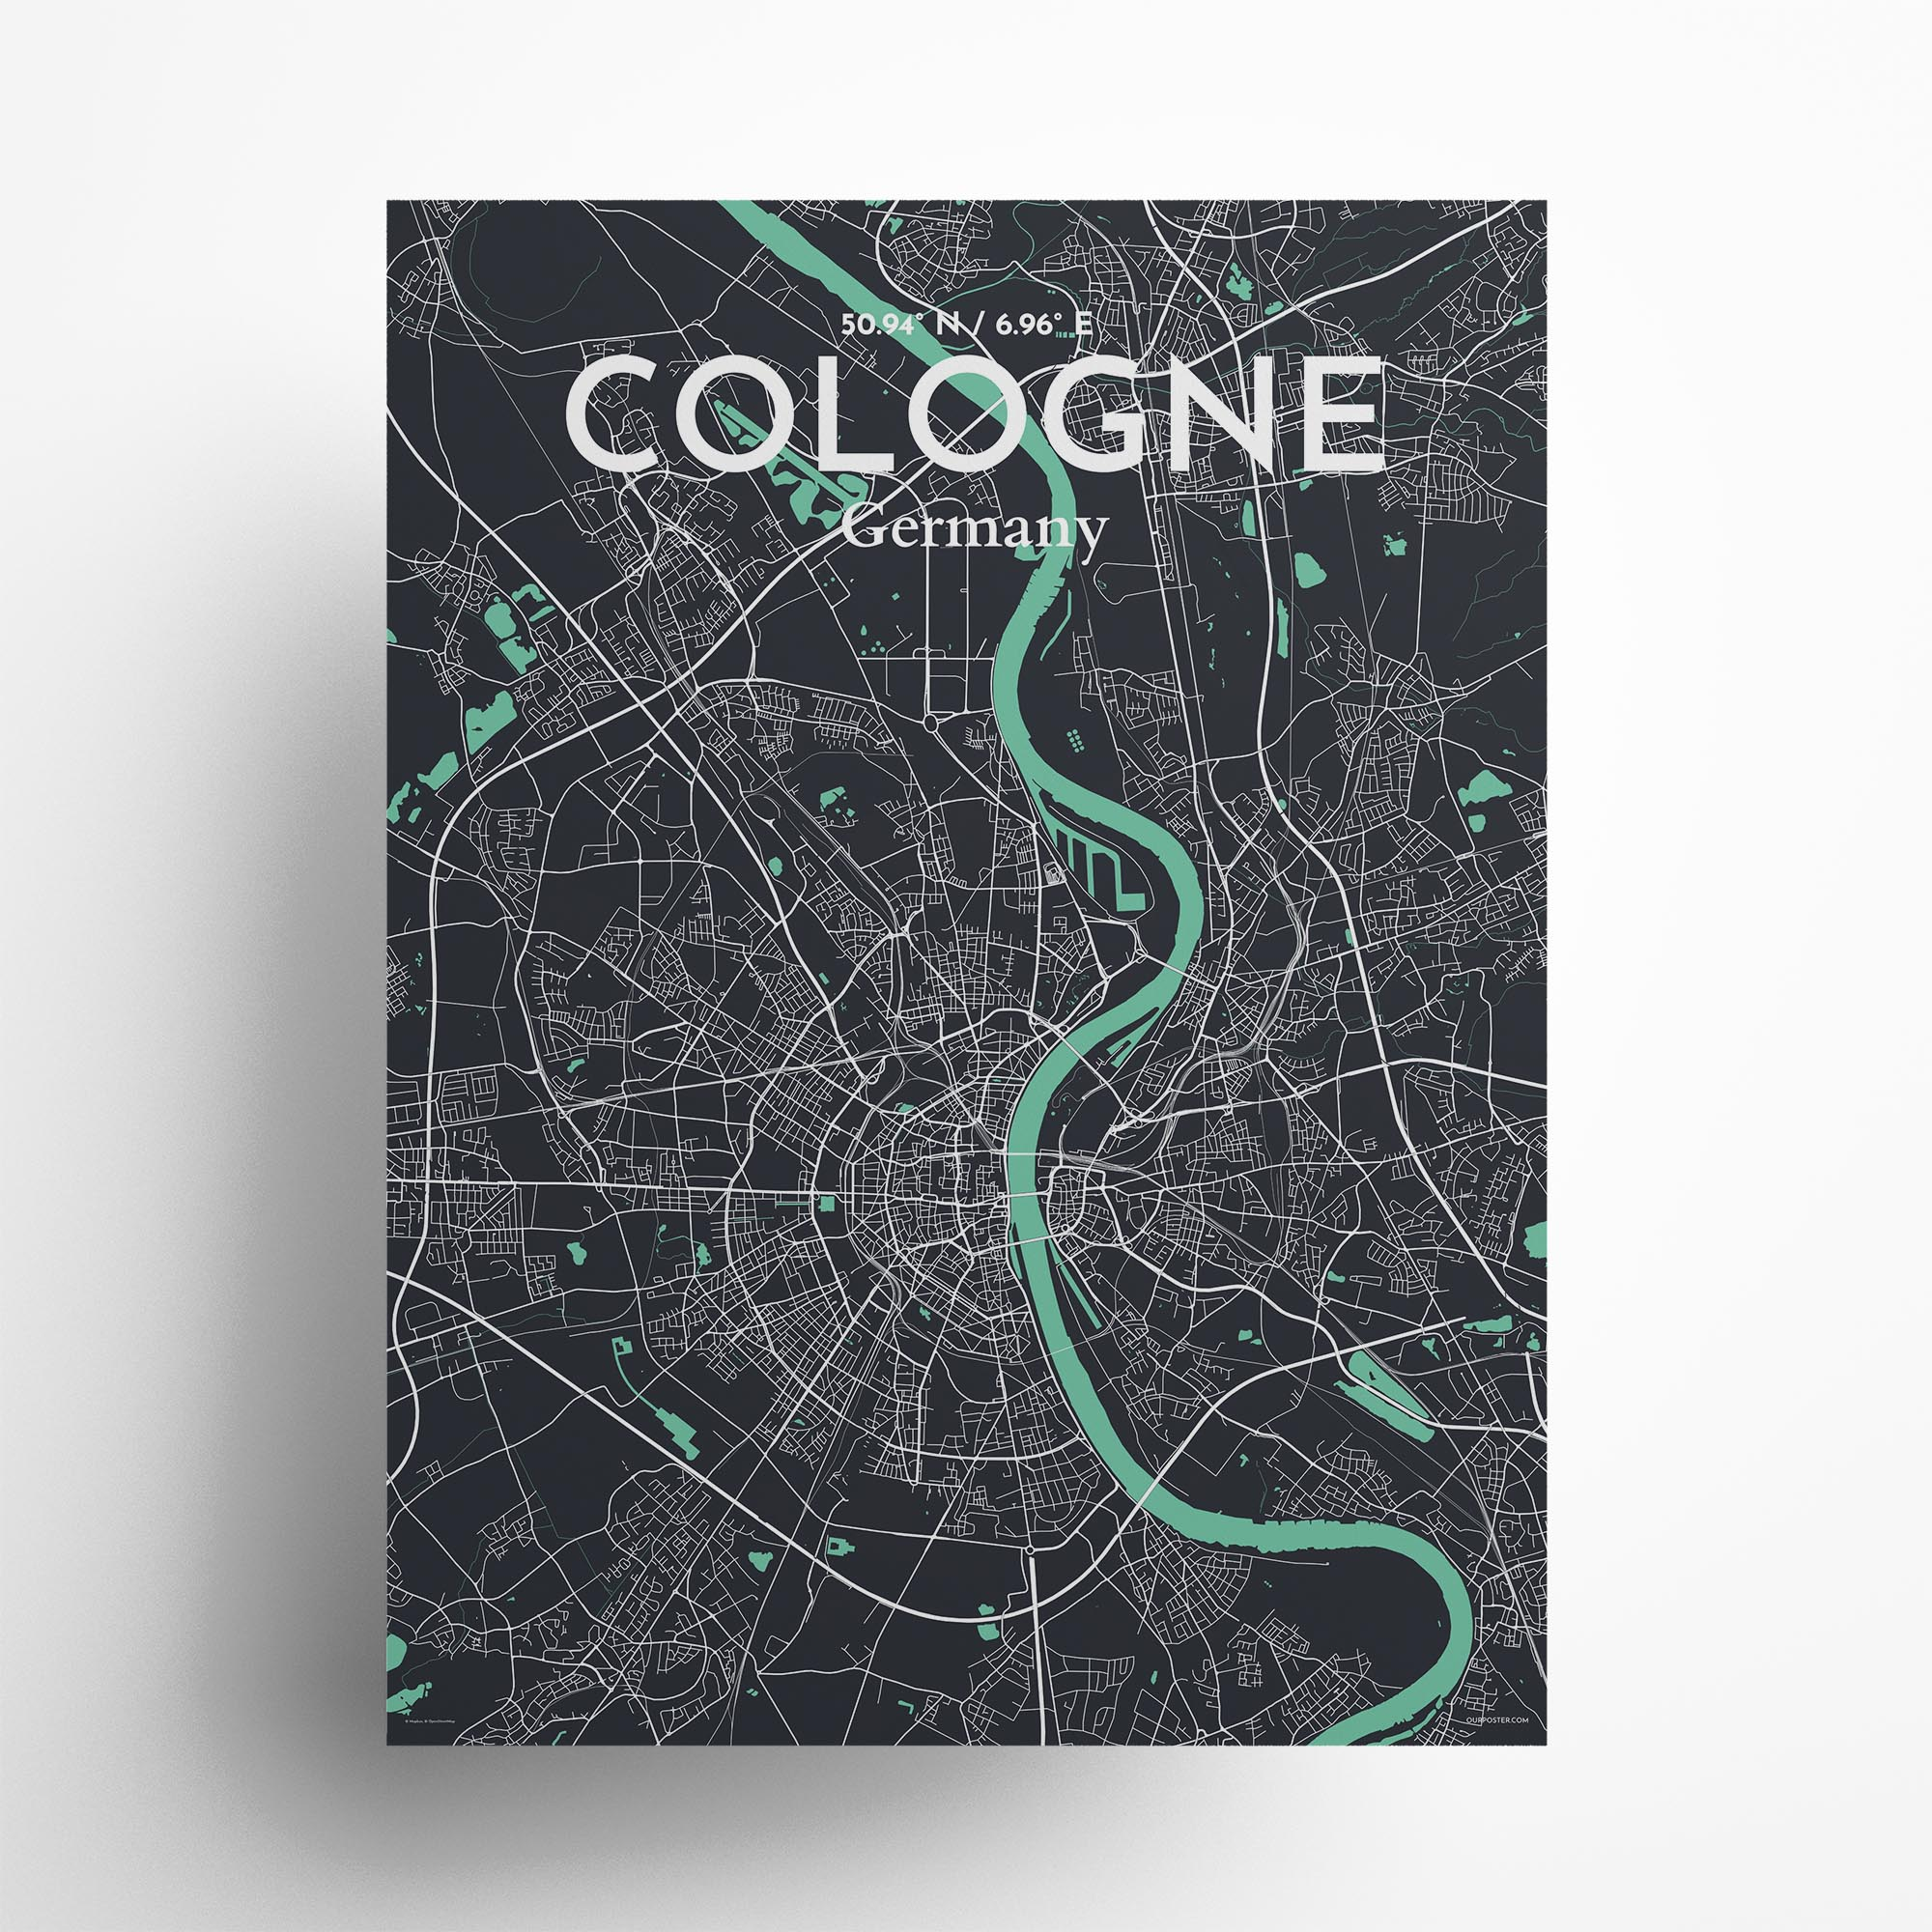 "Cologne city map poster in Dream of size 18"" x 24"""